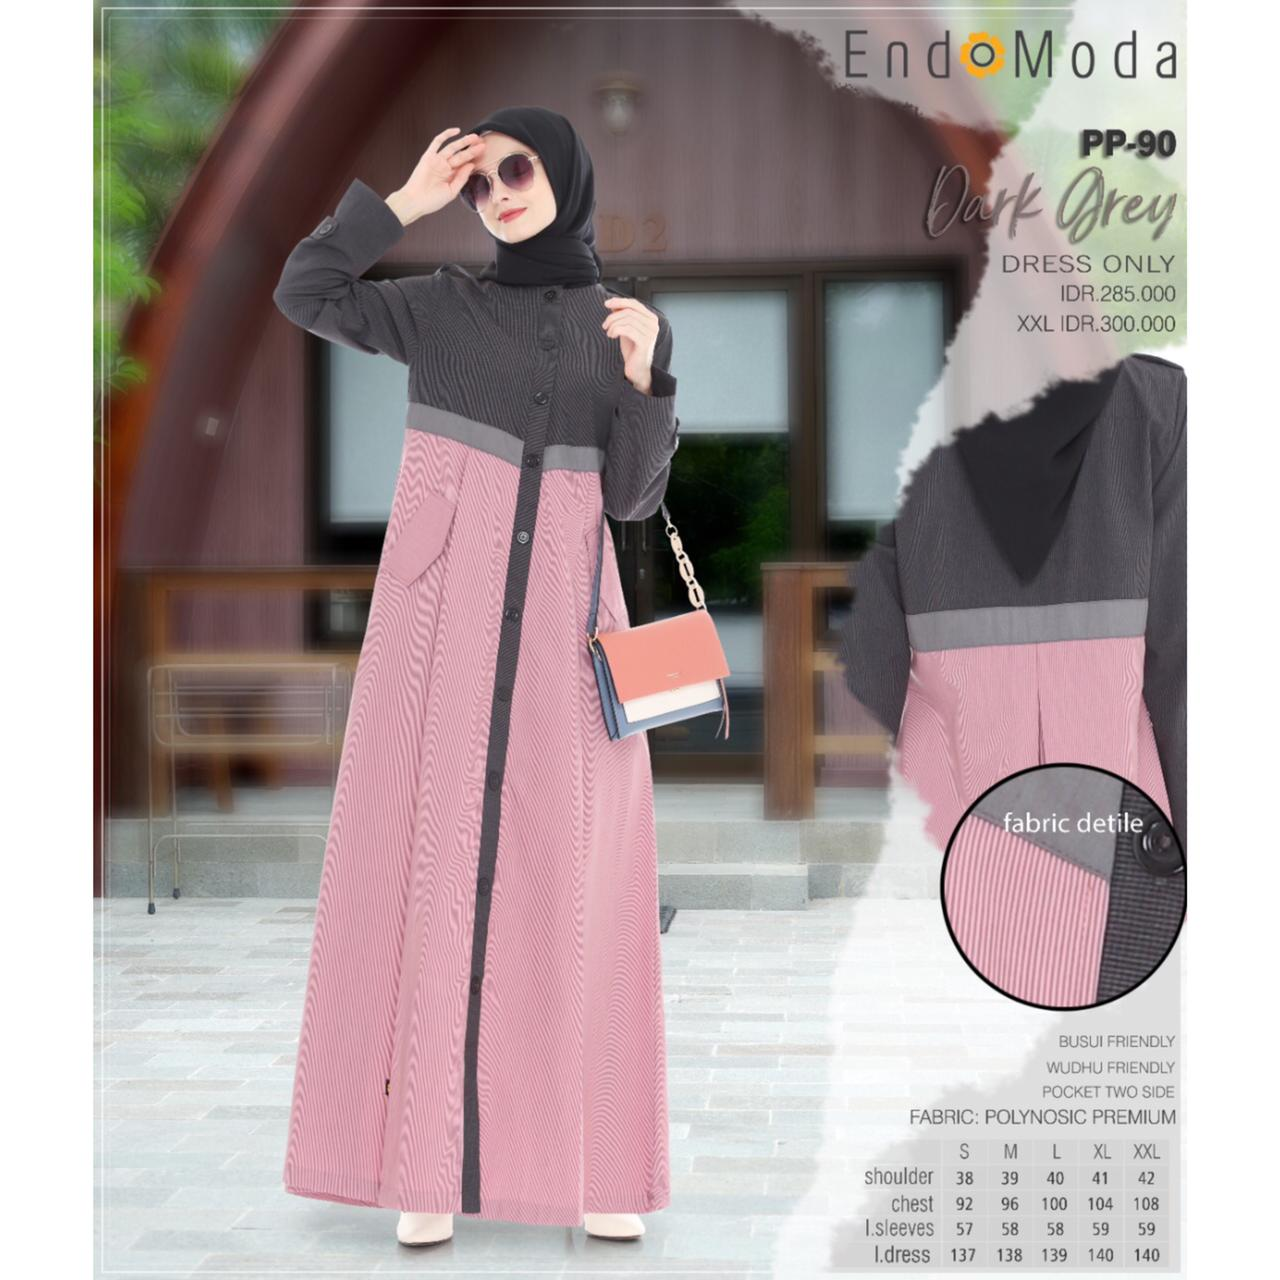 Gamis Endomoda PP 90 Dark Grey